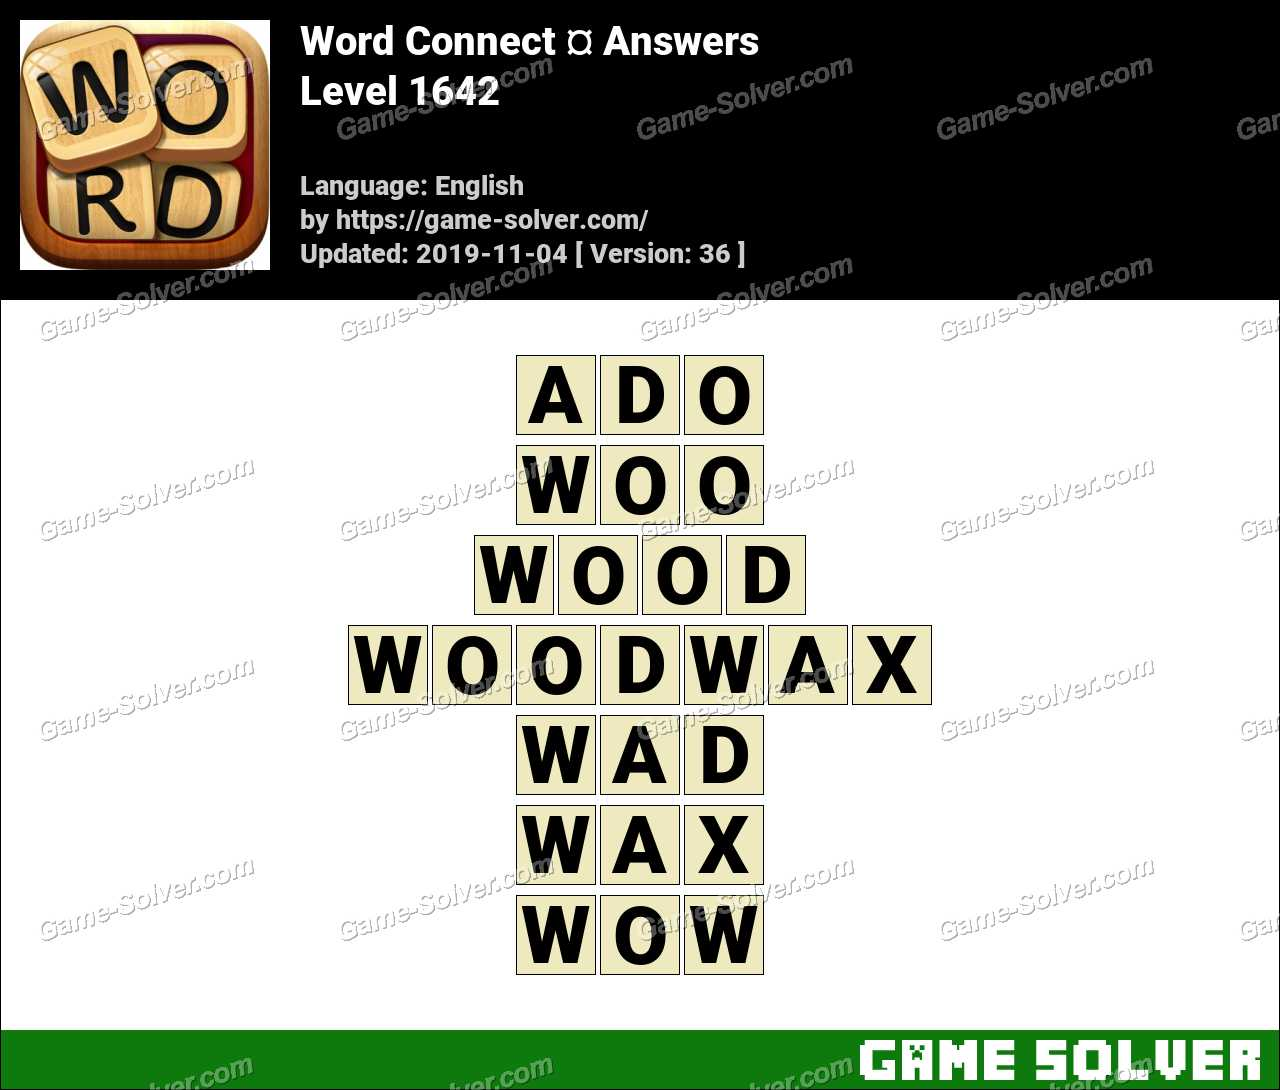 Word Connect Level 1642 Answers